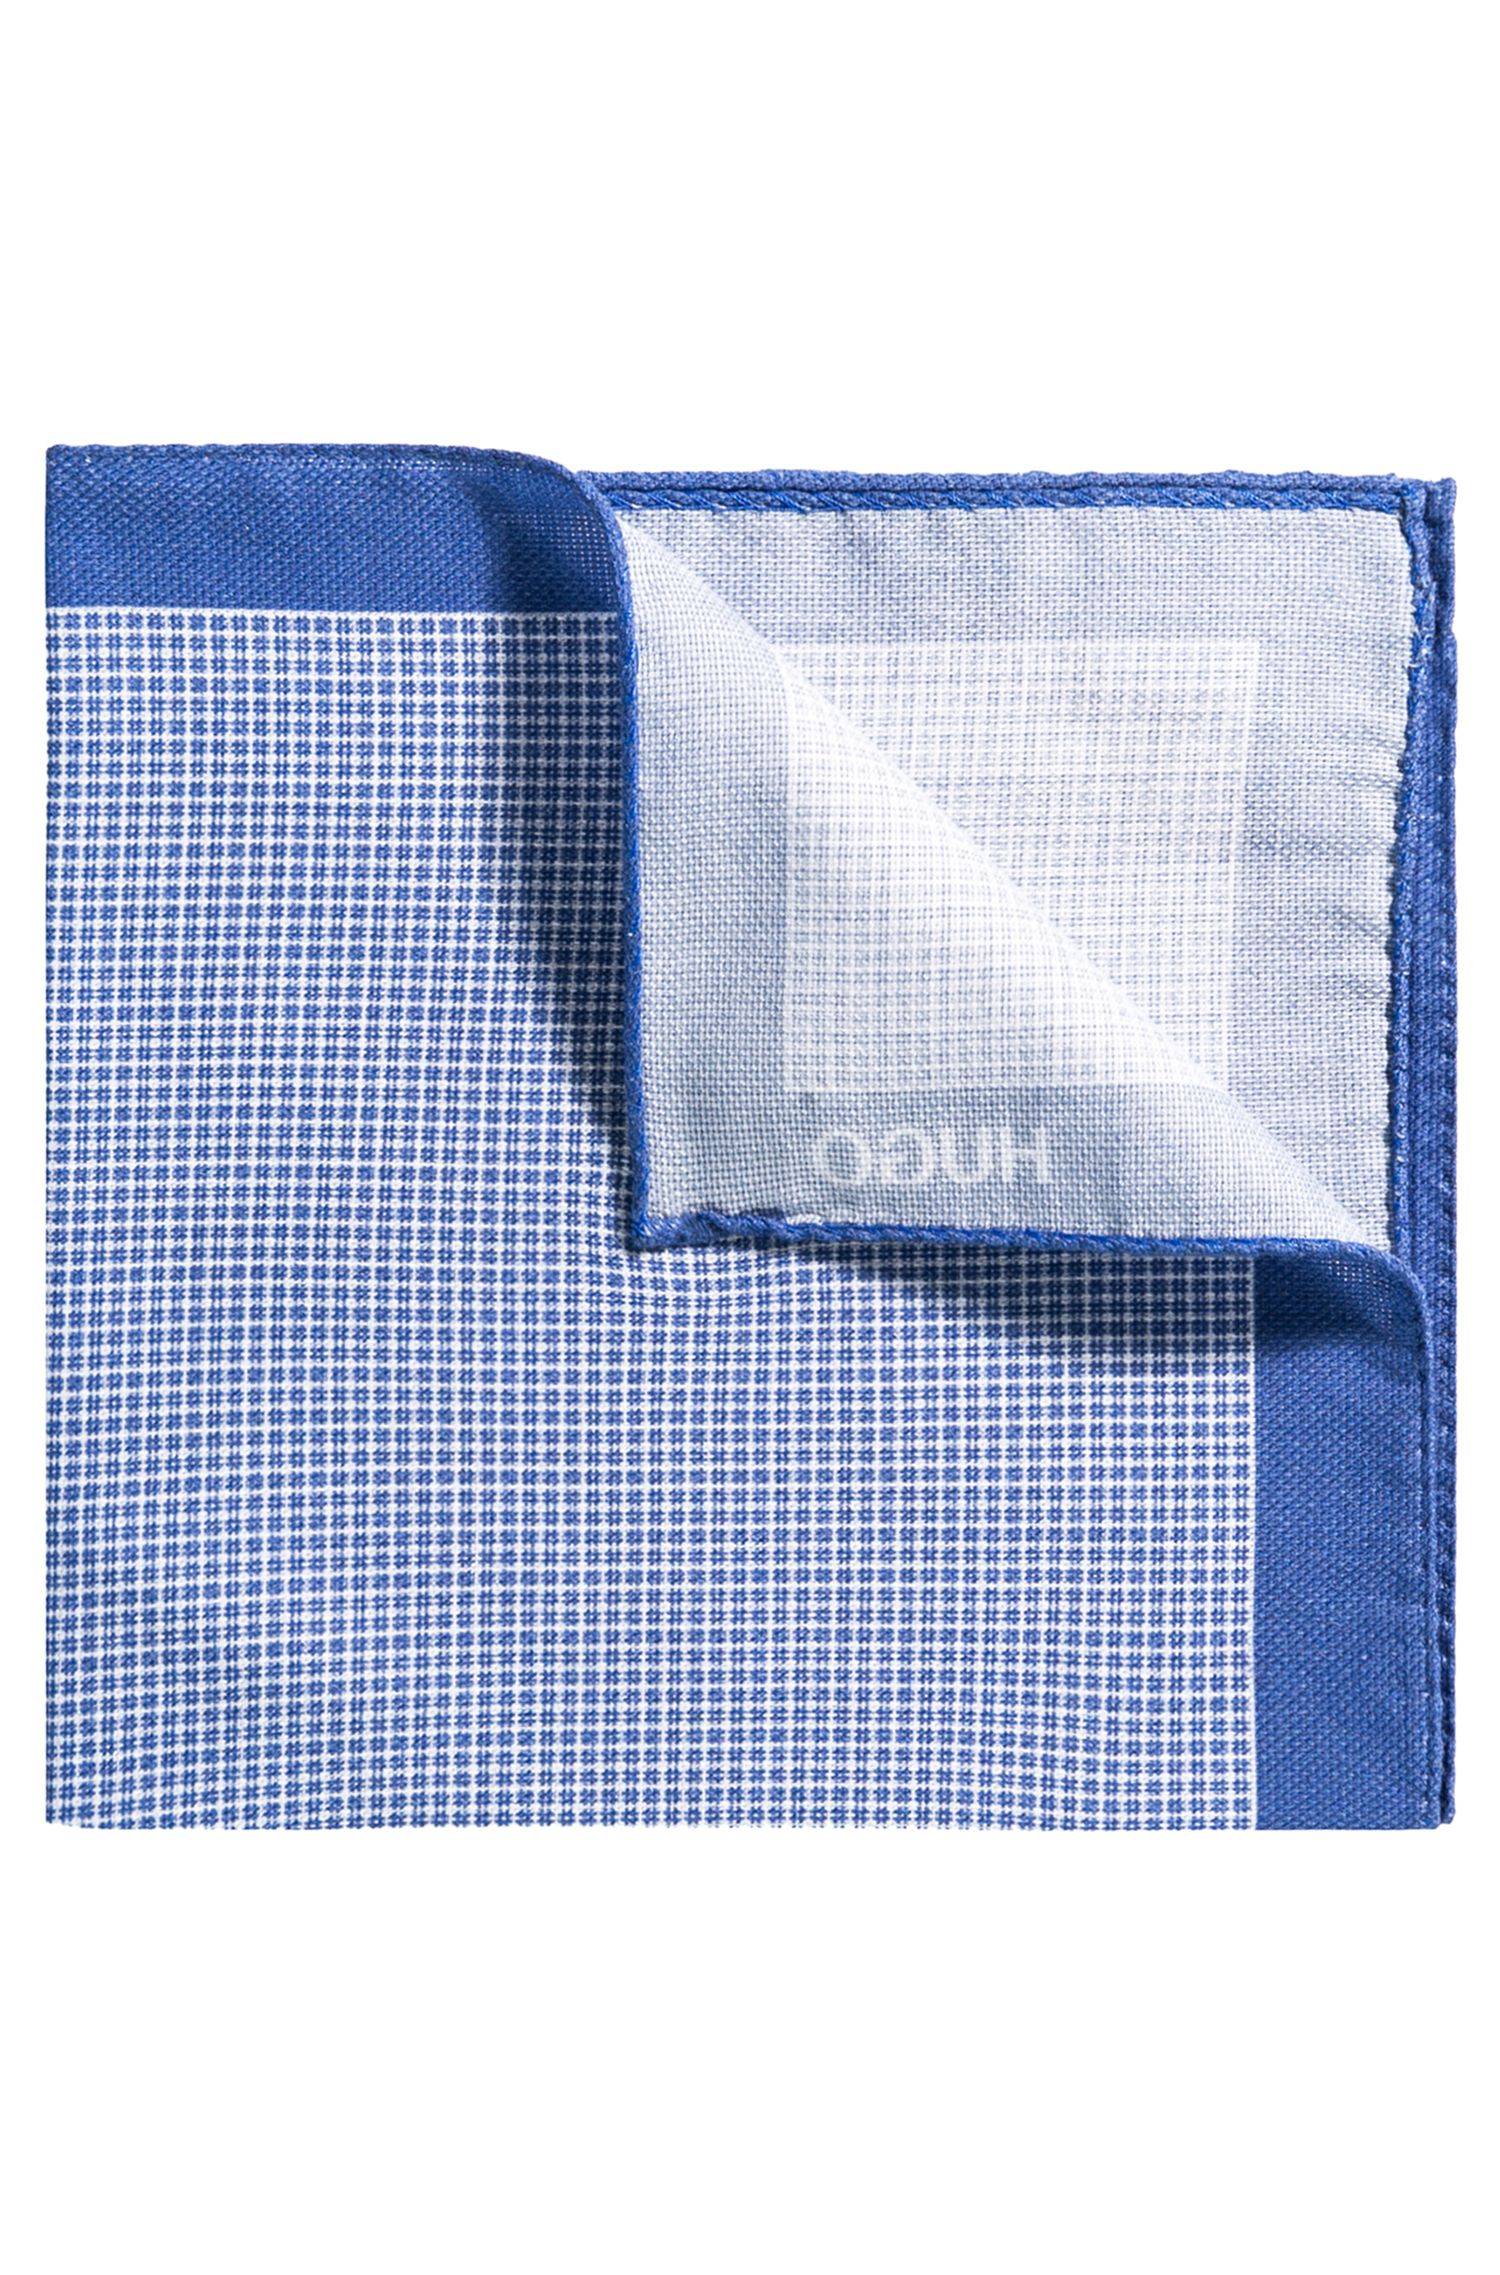 Checked pocket square with border in pure cotton